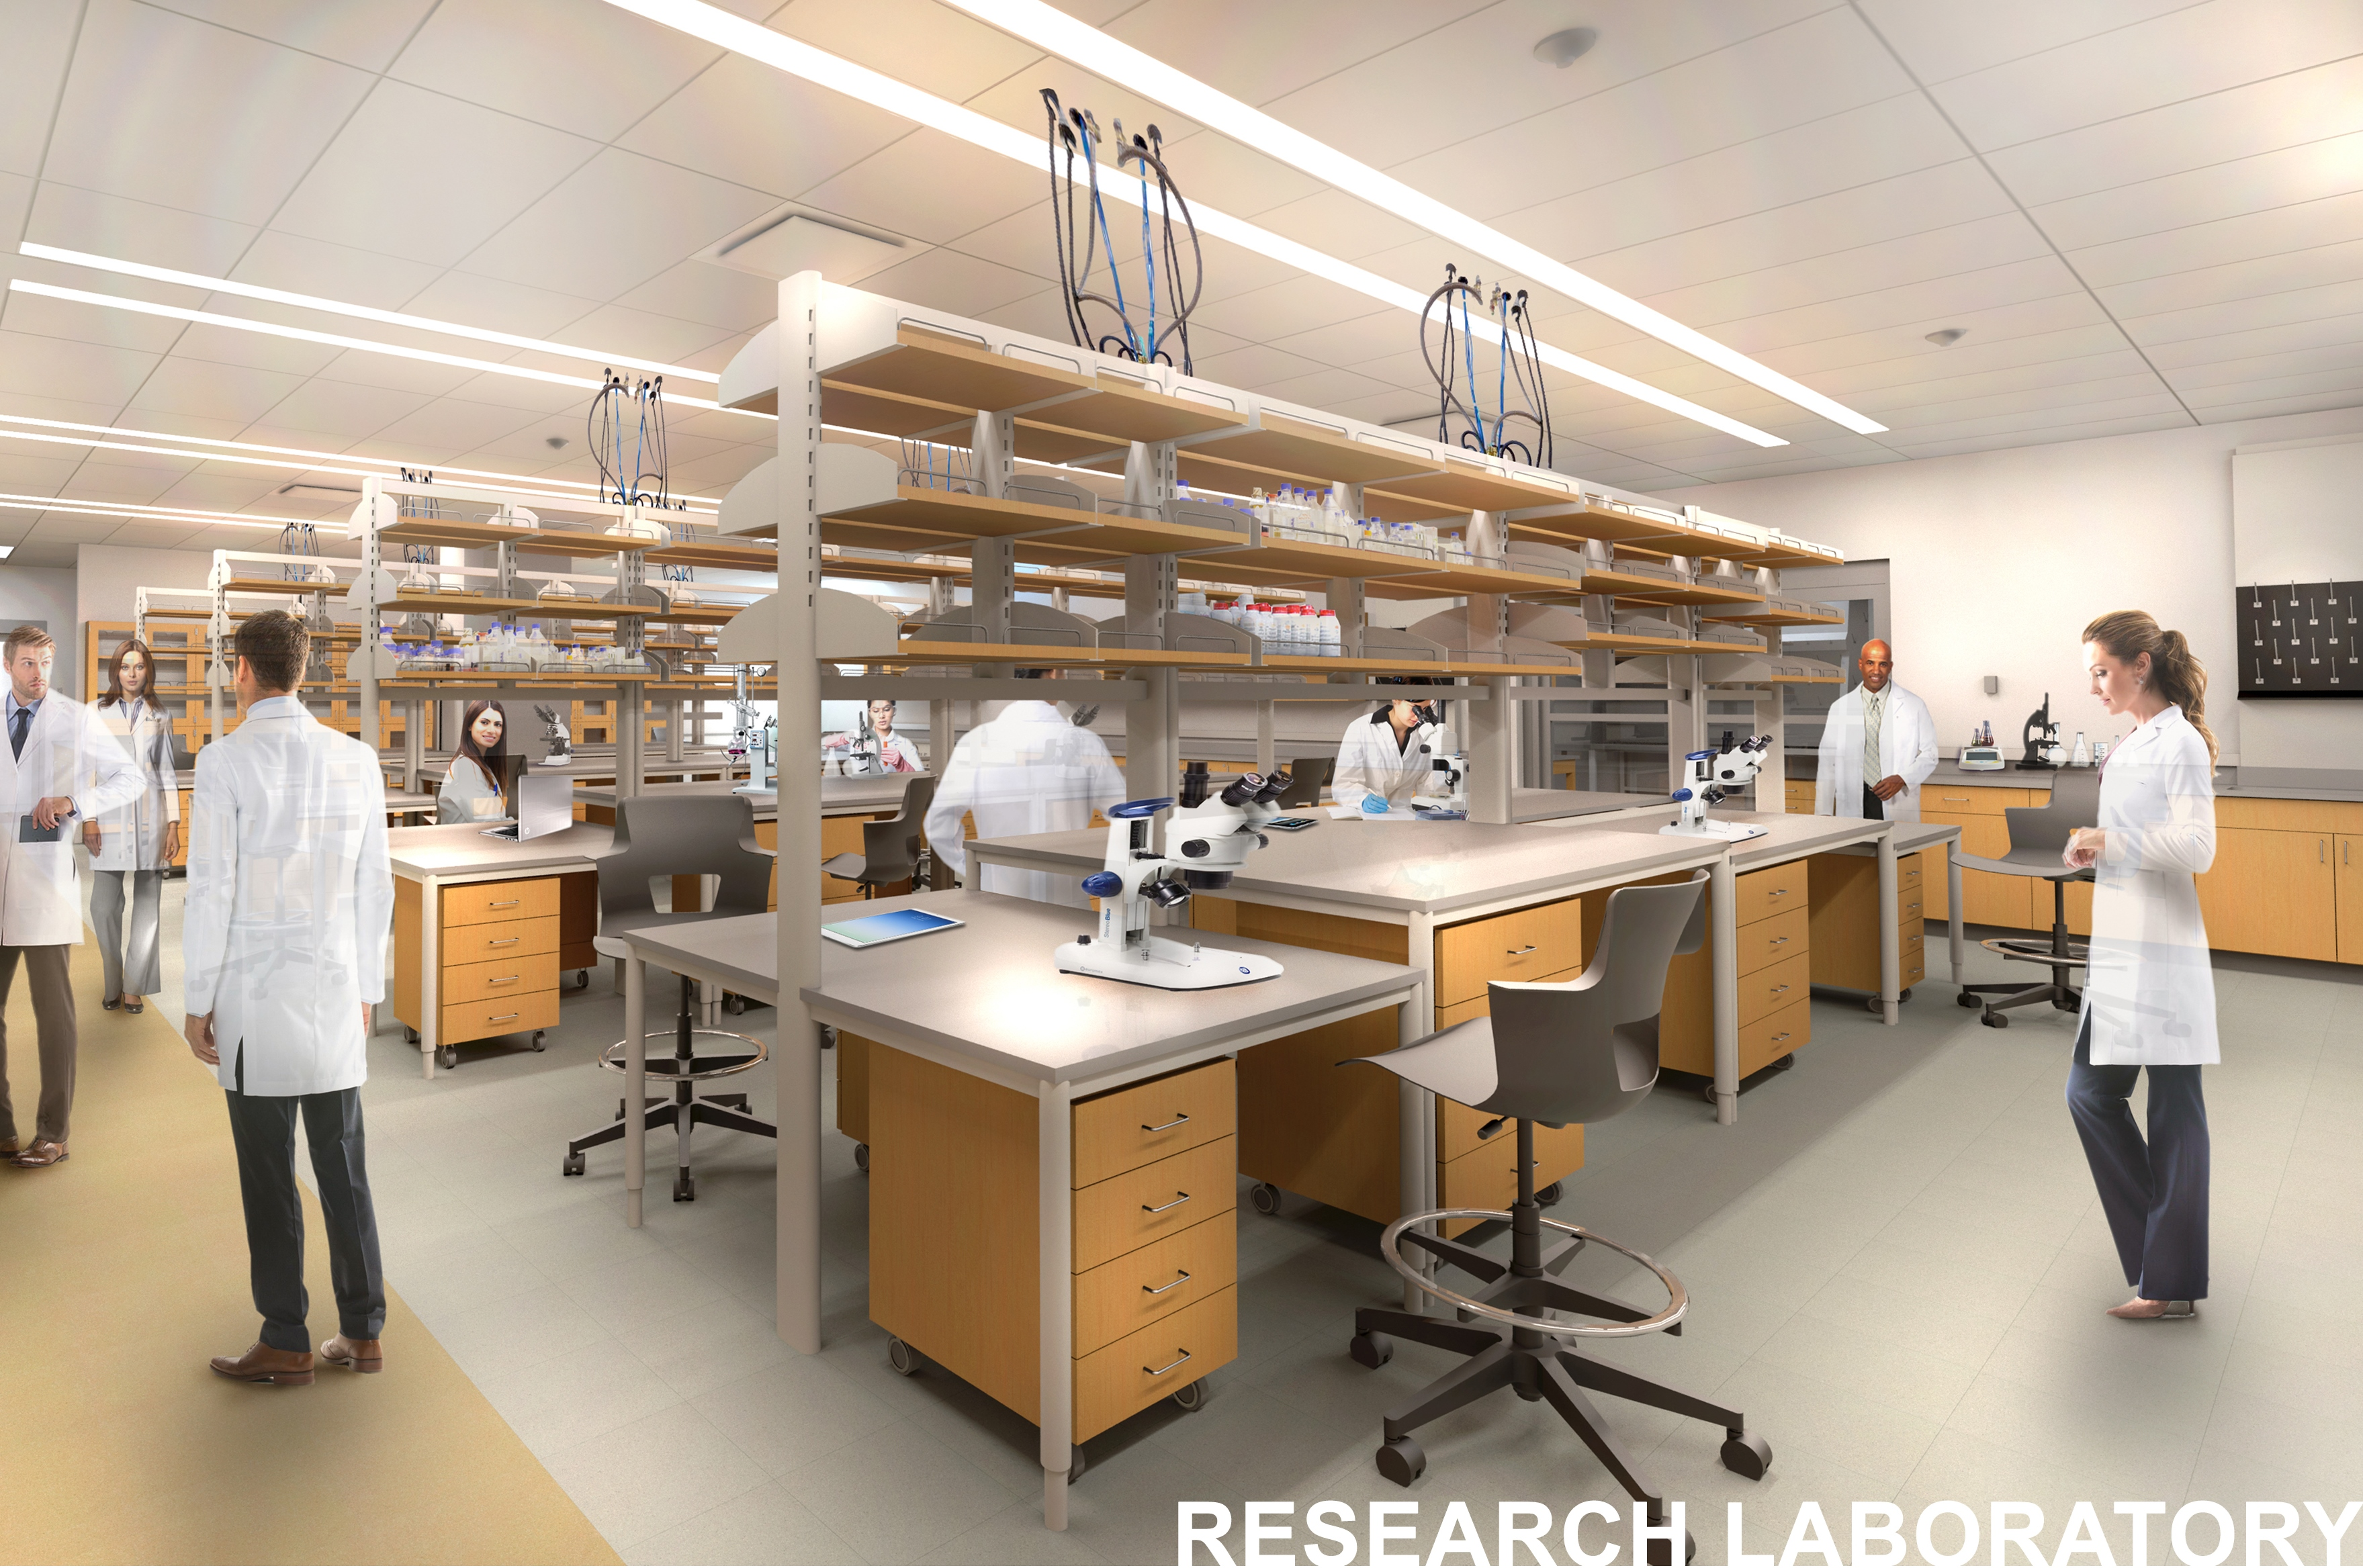 Interior Renovations Will Consist Of New Collaborative Learning  Environments, Repurposing Existing Space In The Current Building To Build  Open, Flexible, ...